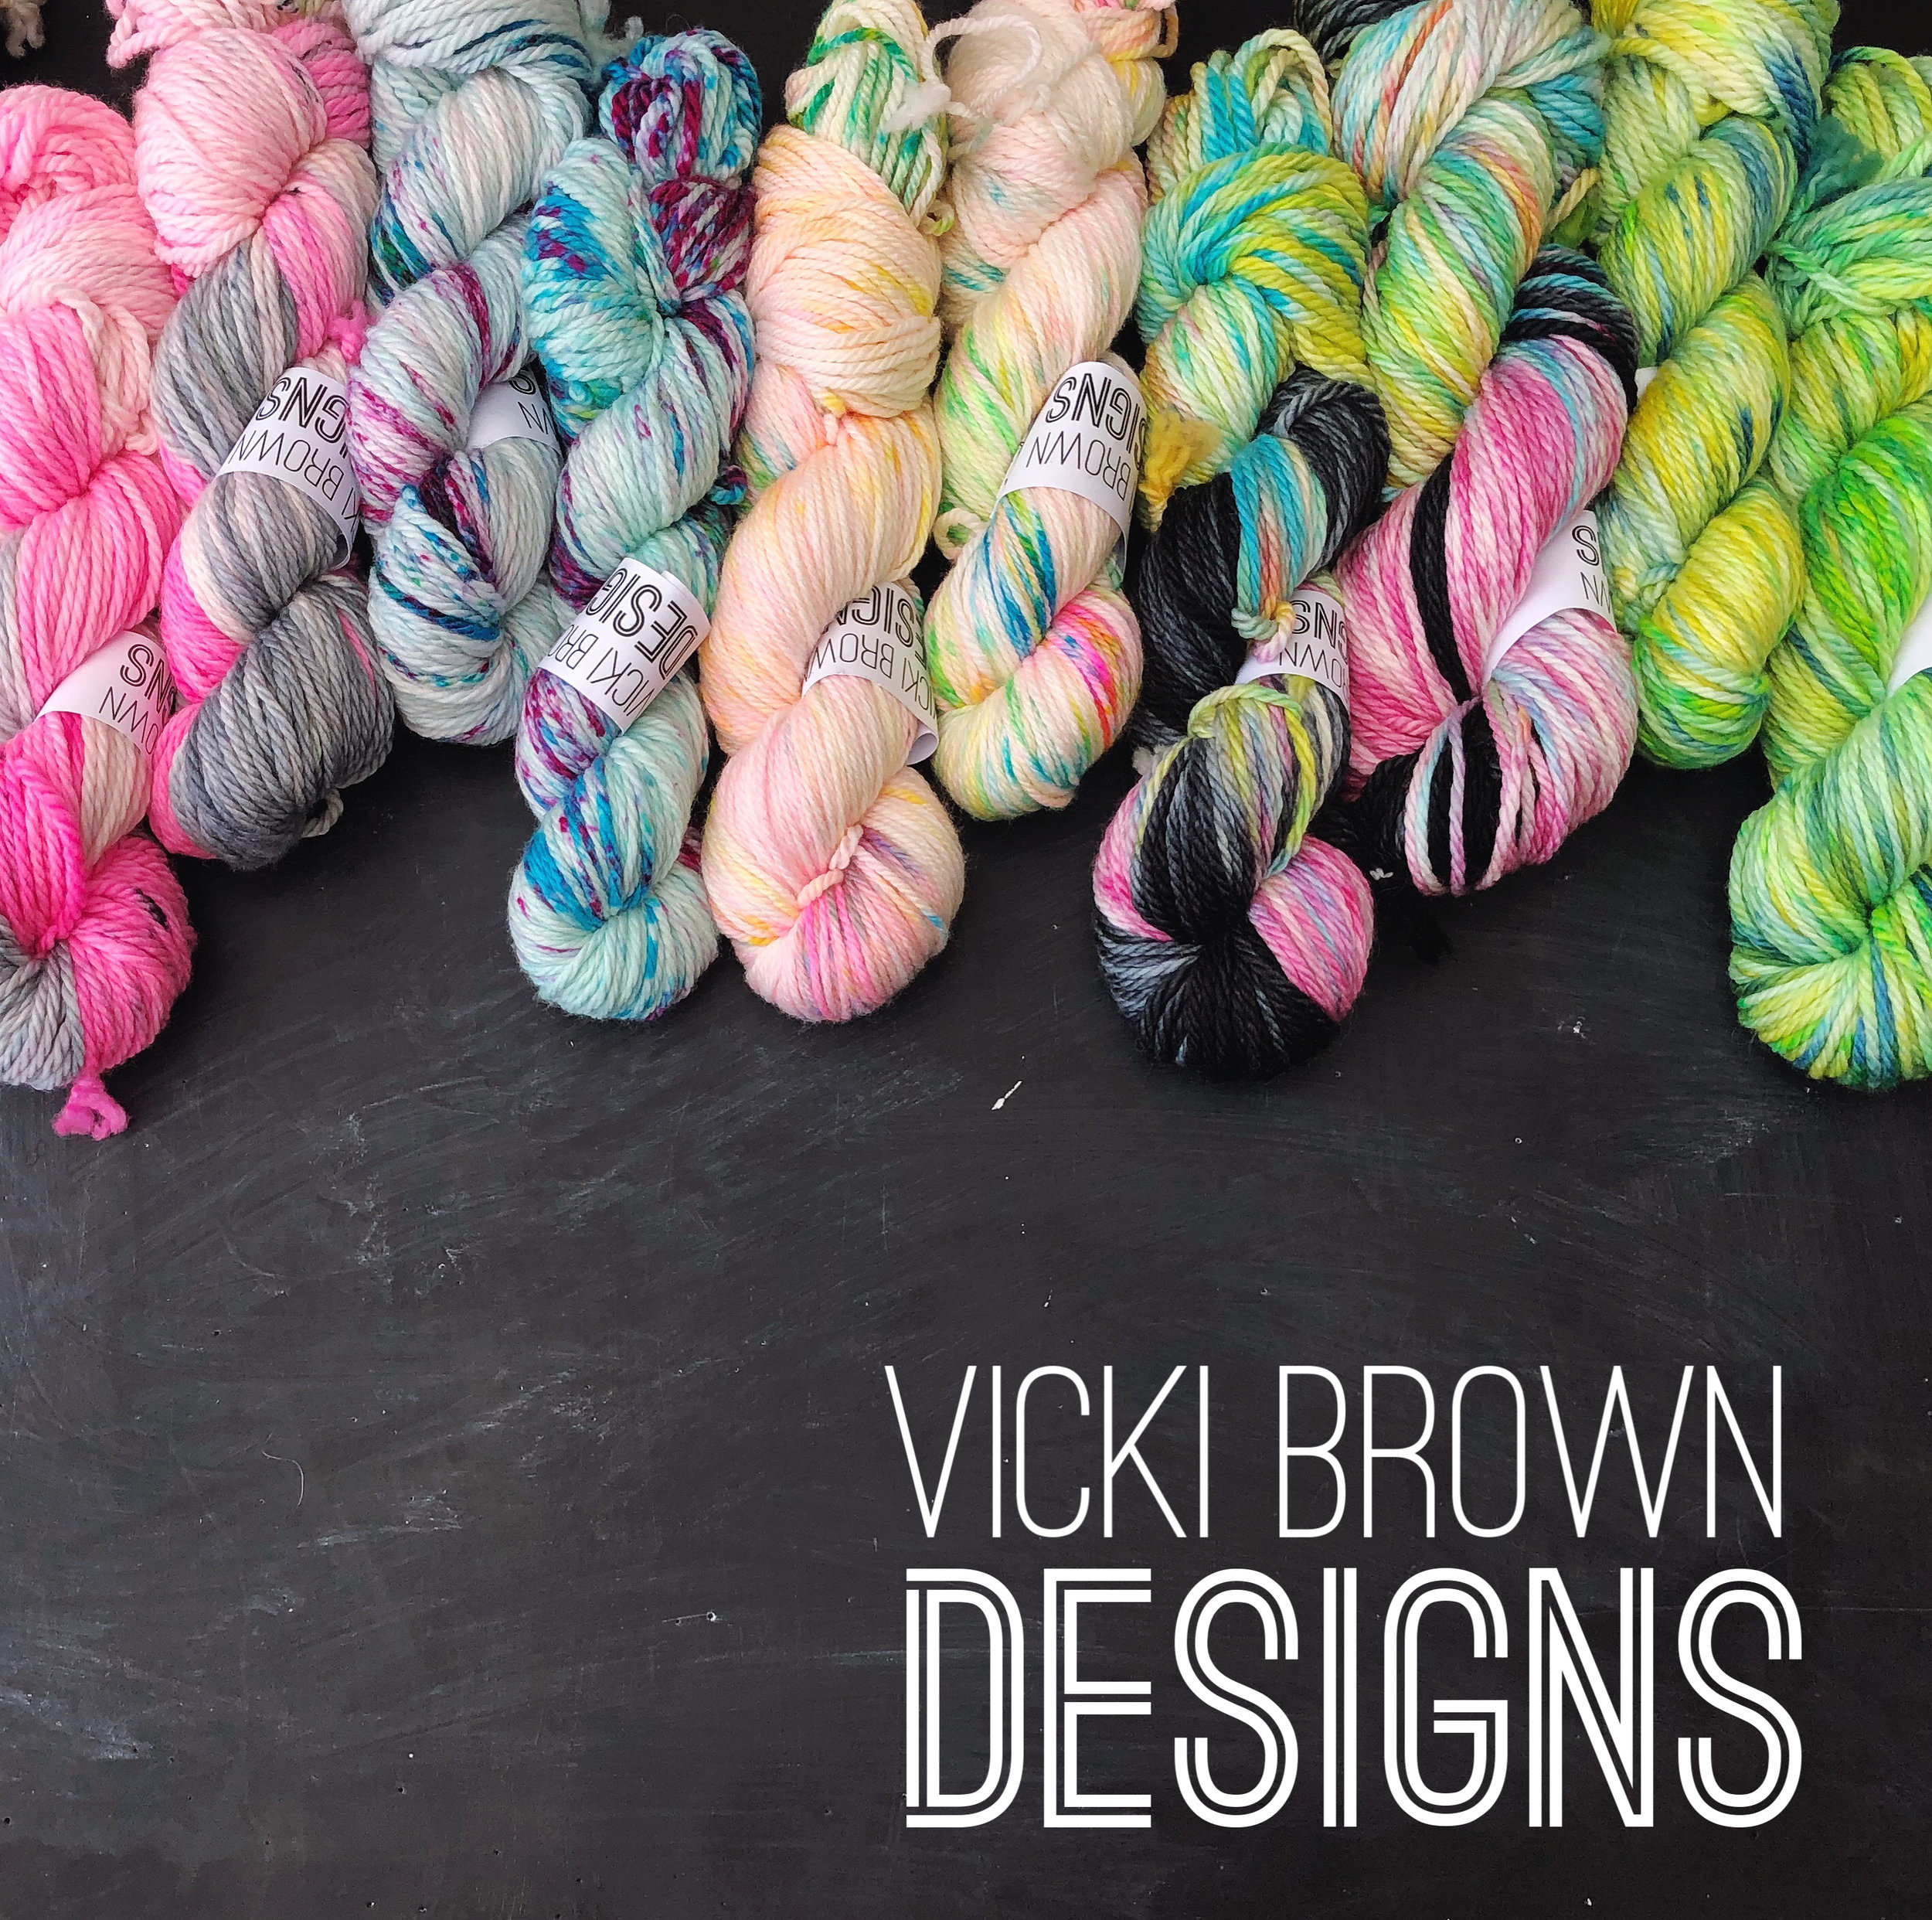 VICKI BROWN DESIGNS  Crochet designer and yarn dyer, combining these two passions to create beautiful, truly wearable crochet pieces. Mostly obsessed with crochet socks!